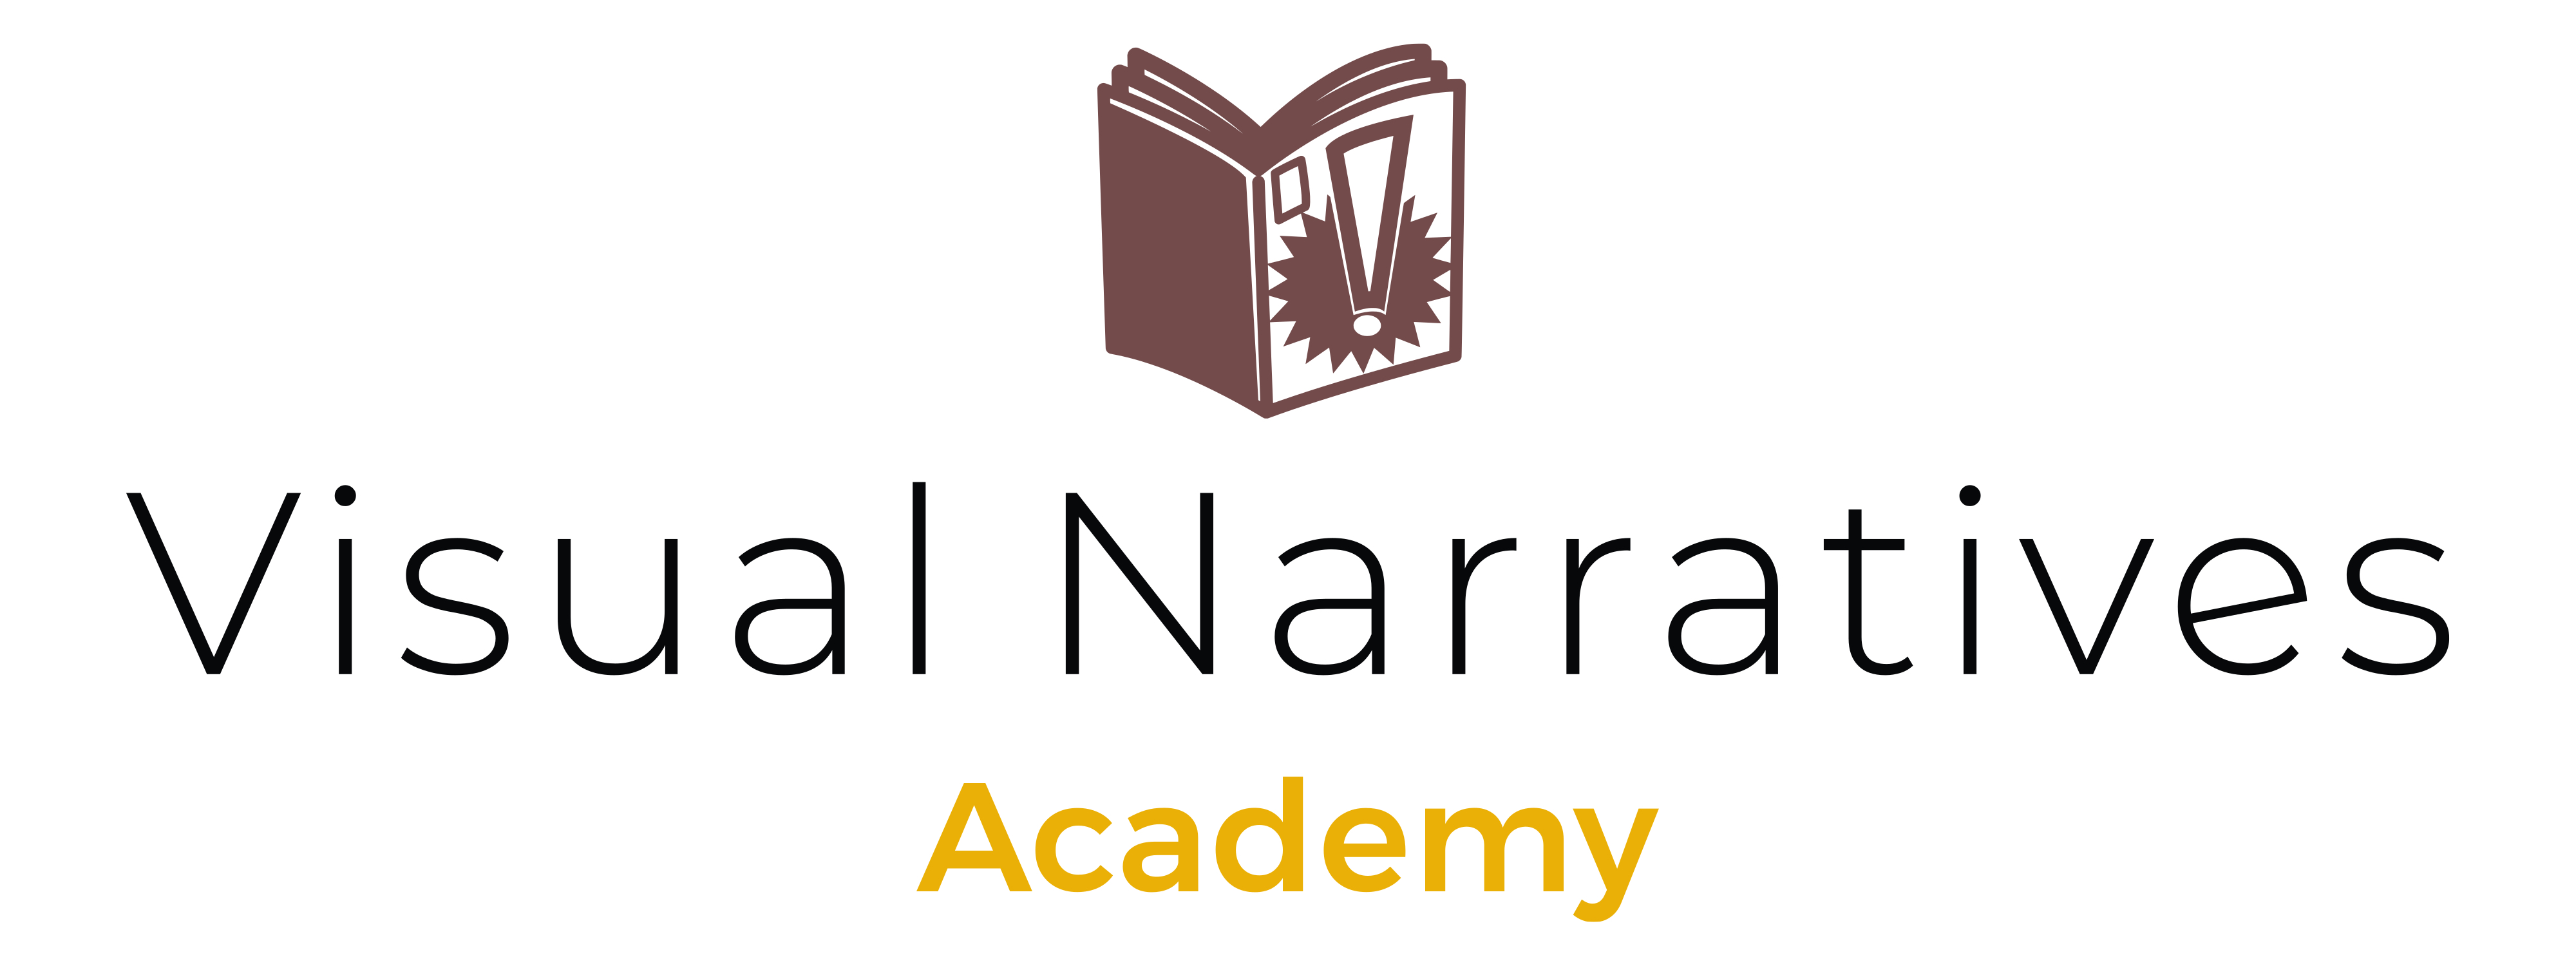 Visual Narratives Academy | Digital Art Live